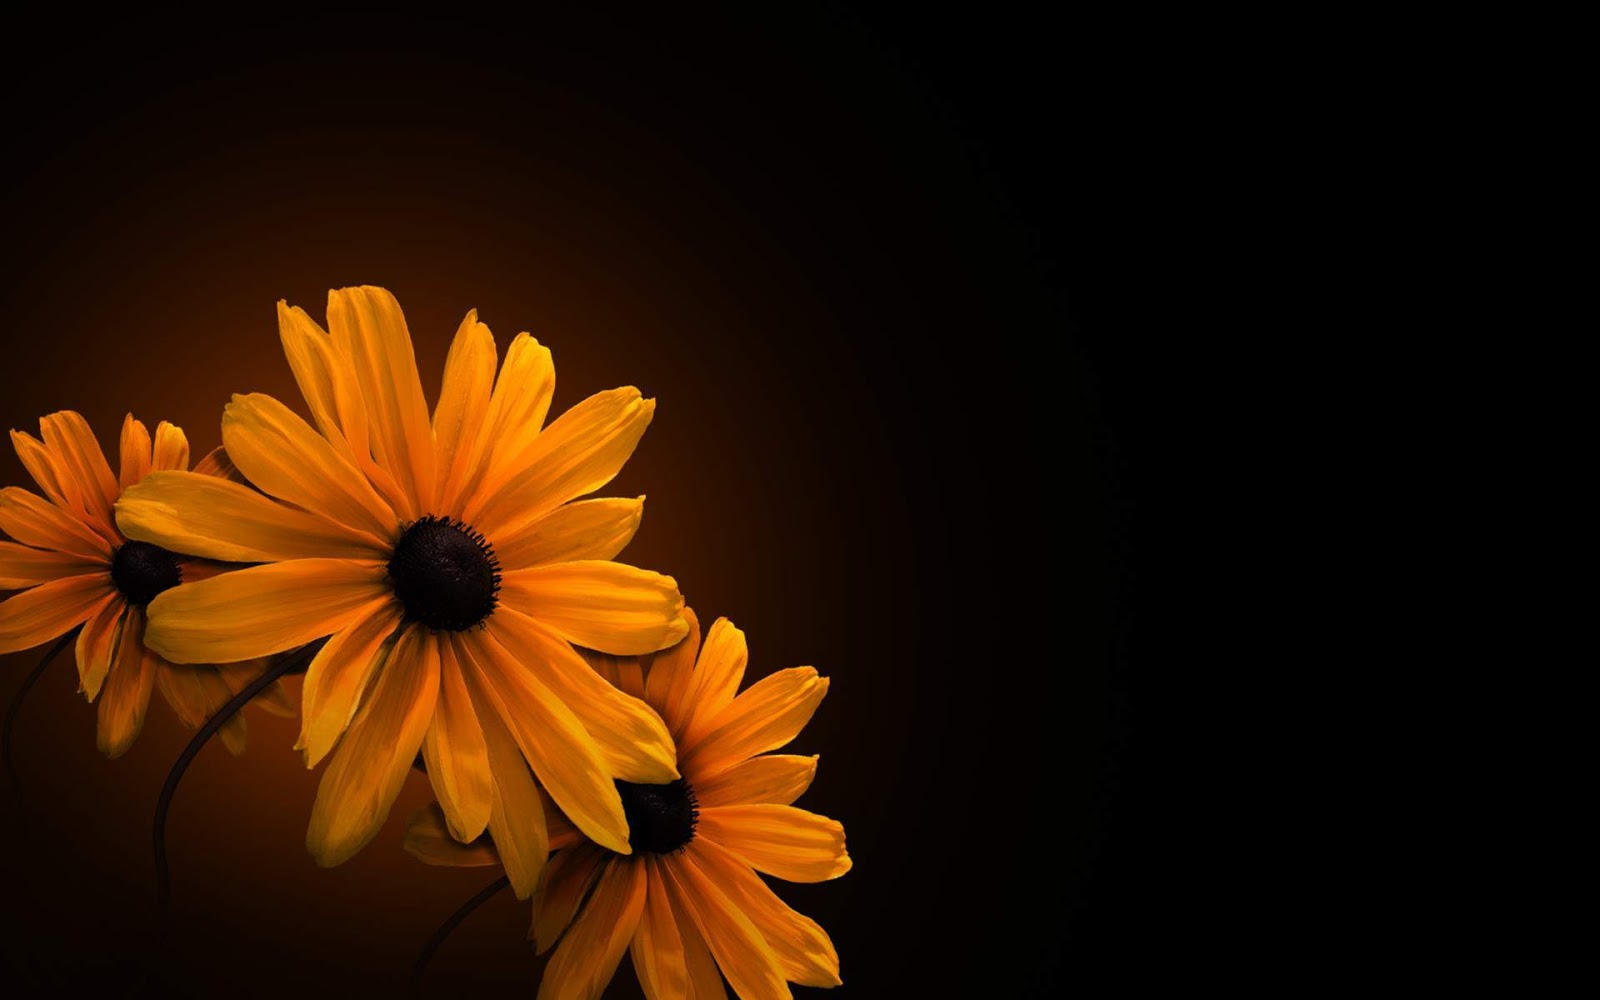 Floral Wallpaper With Black Background 8 Hd Wallpaper